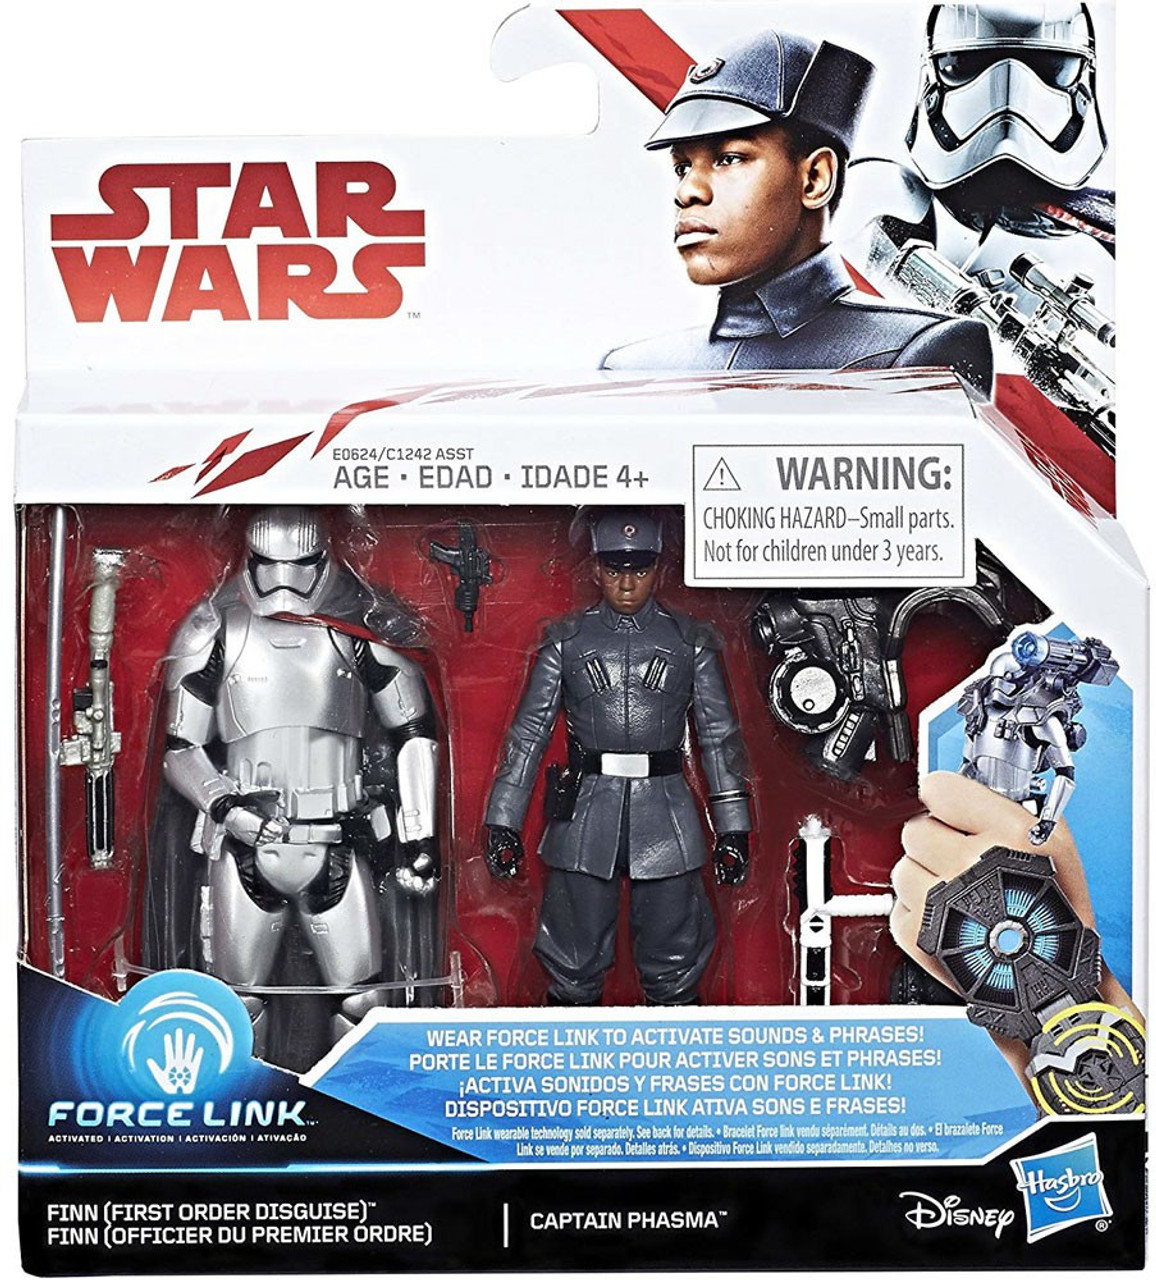 Bb-9E Pack Toy Play Kids First Order Disguise Bb-8 Star Wars Force Link Rose